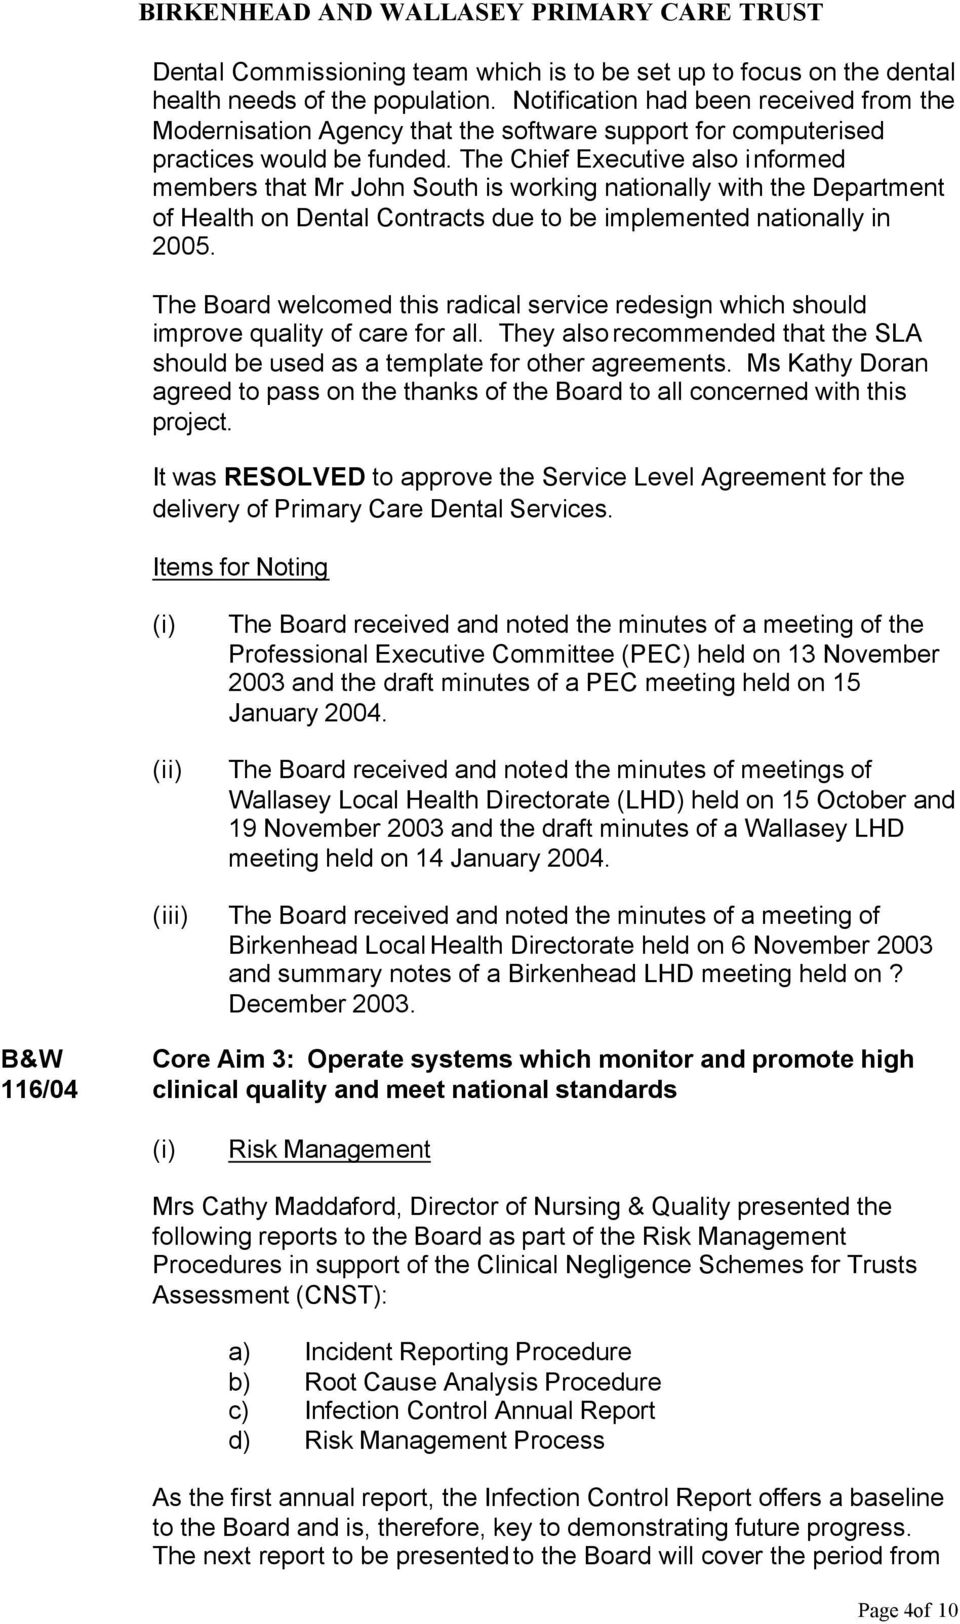 The Chief Executive also informed members that Mr John South is working nationally with the Department of Health on Dental Contracts due to be implemented nationally in 2005.